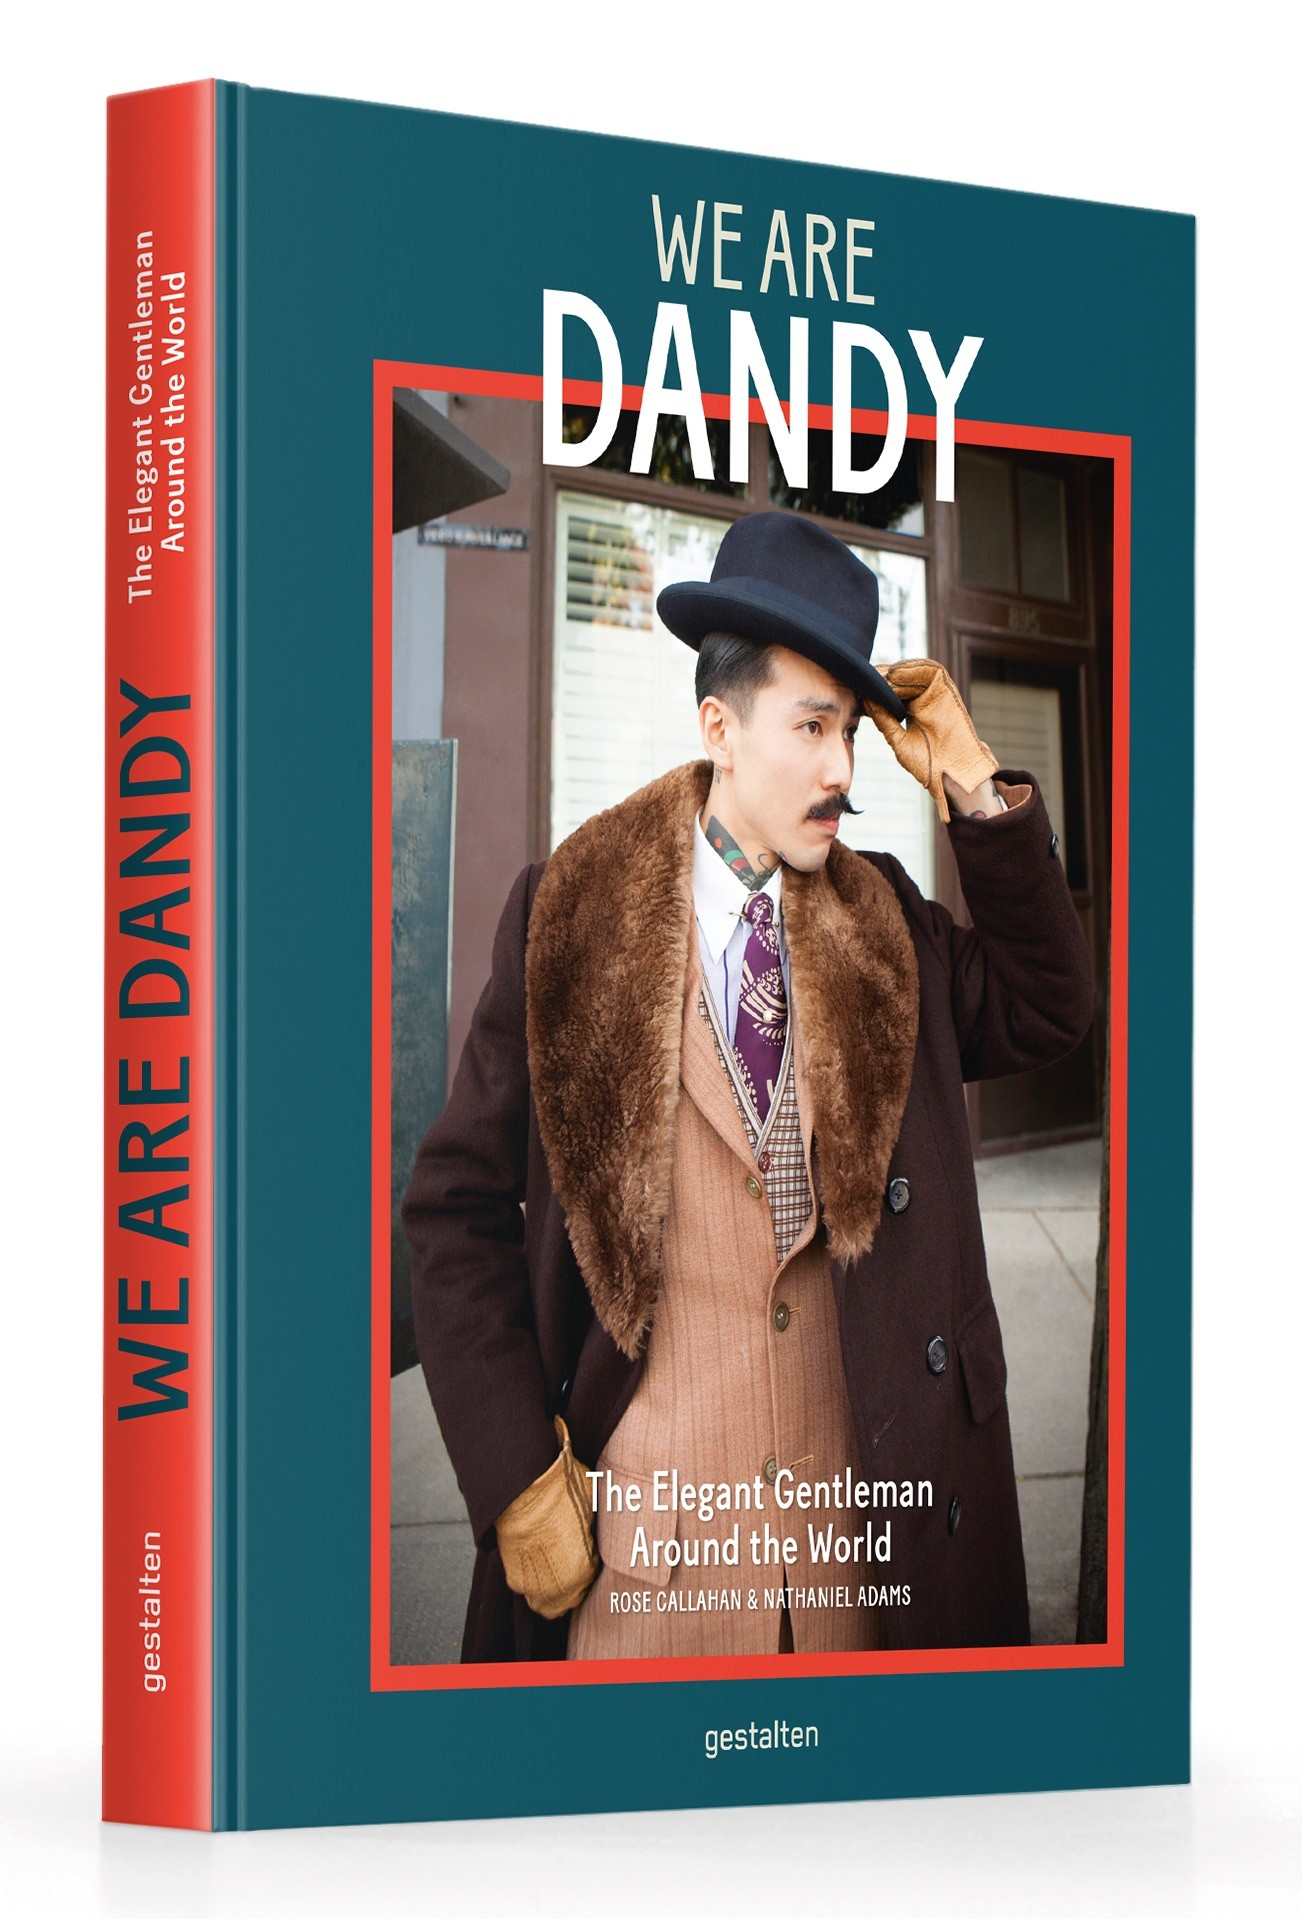 we-are-dandy-book-gestalen